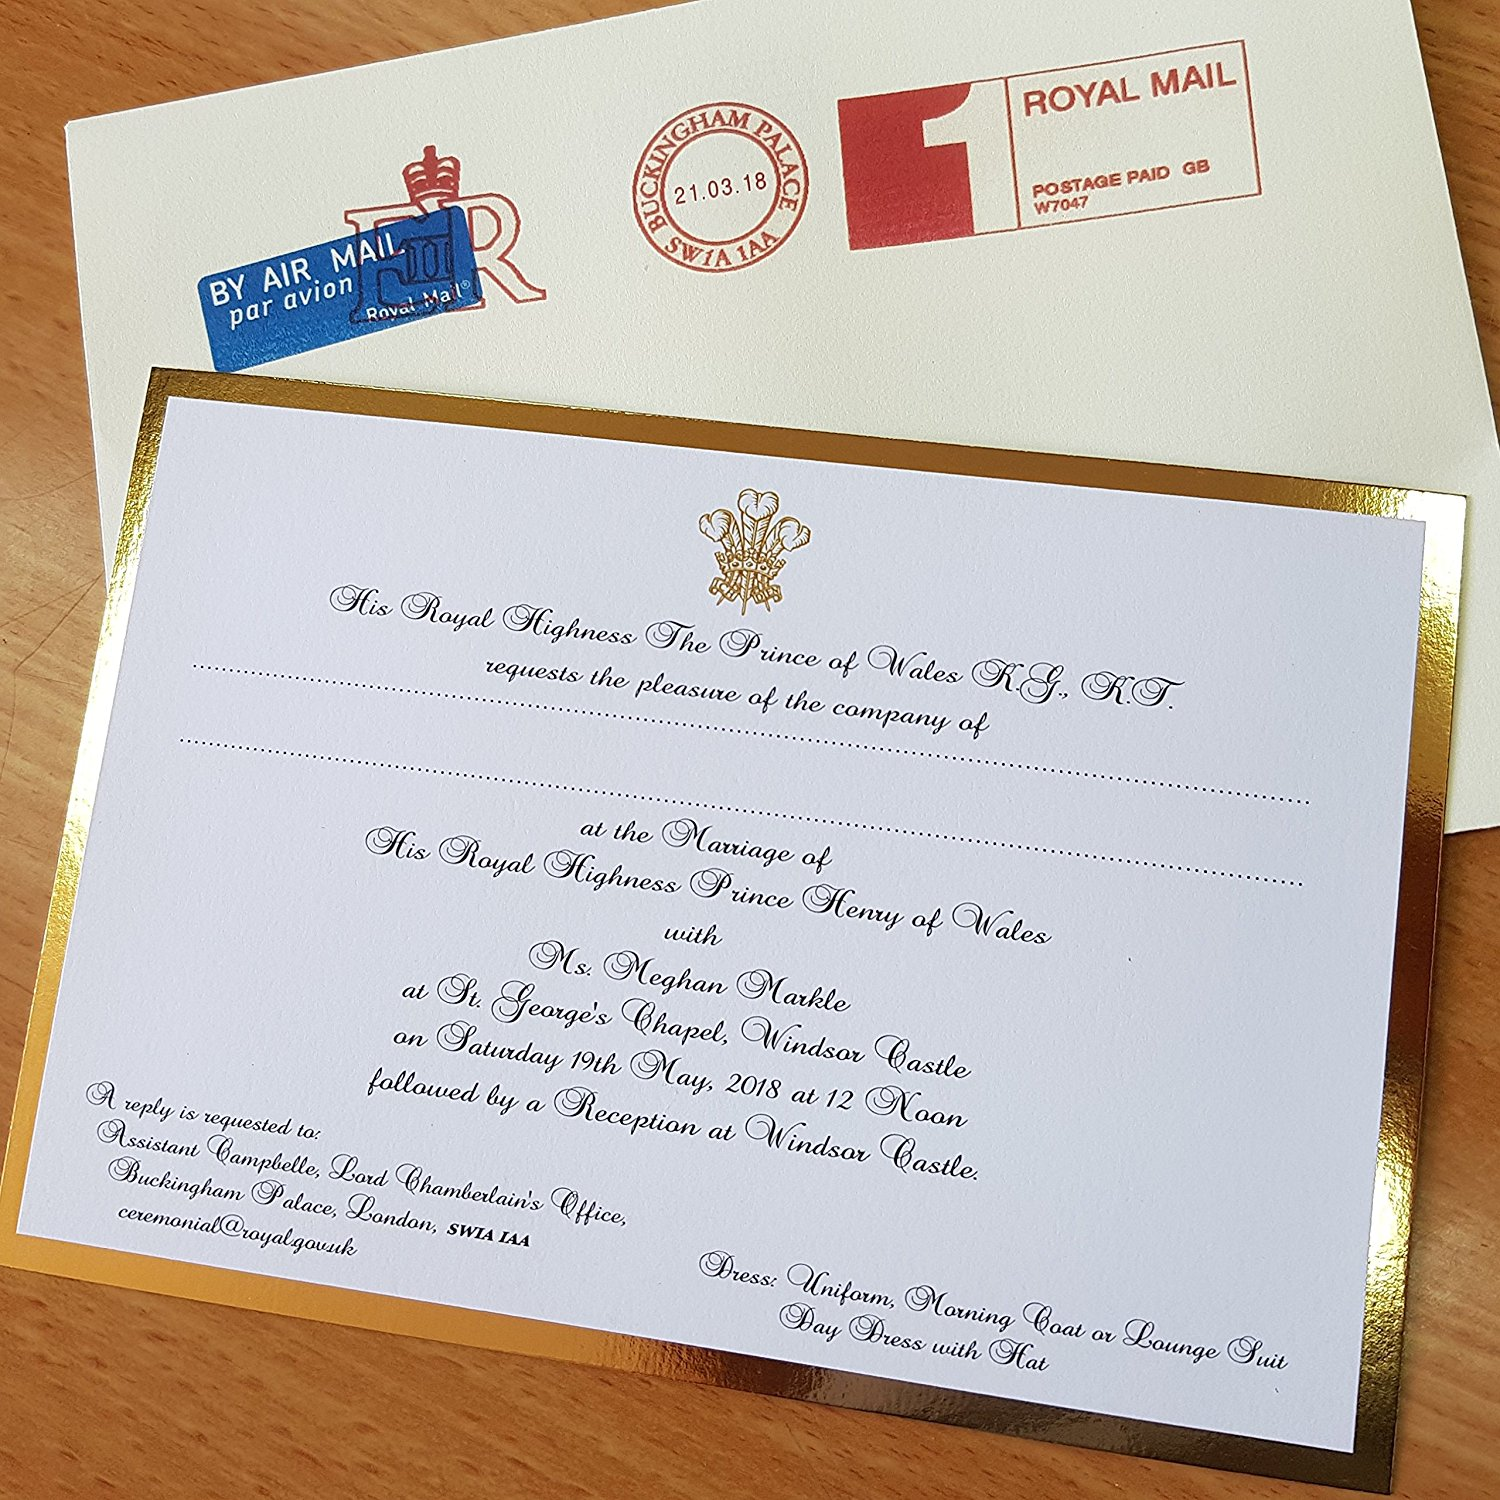 royal wedding invitation prince harry meghan replica souvenir card envelope dianalegacy latest update news images videos of british royal family dianalegacy